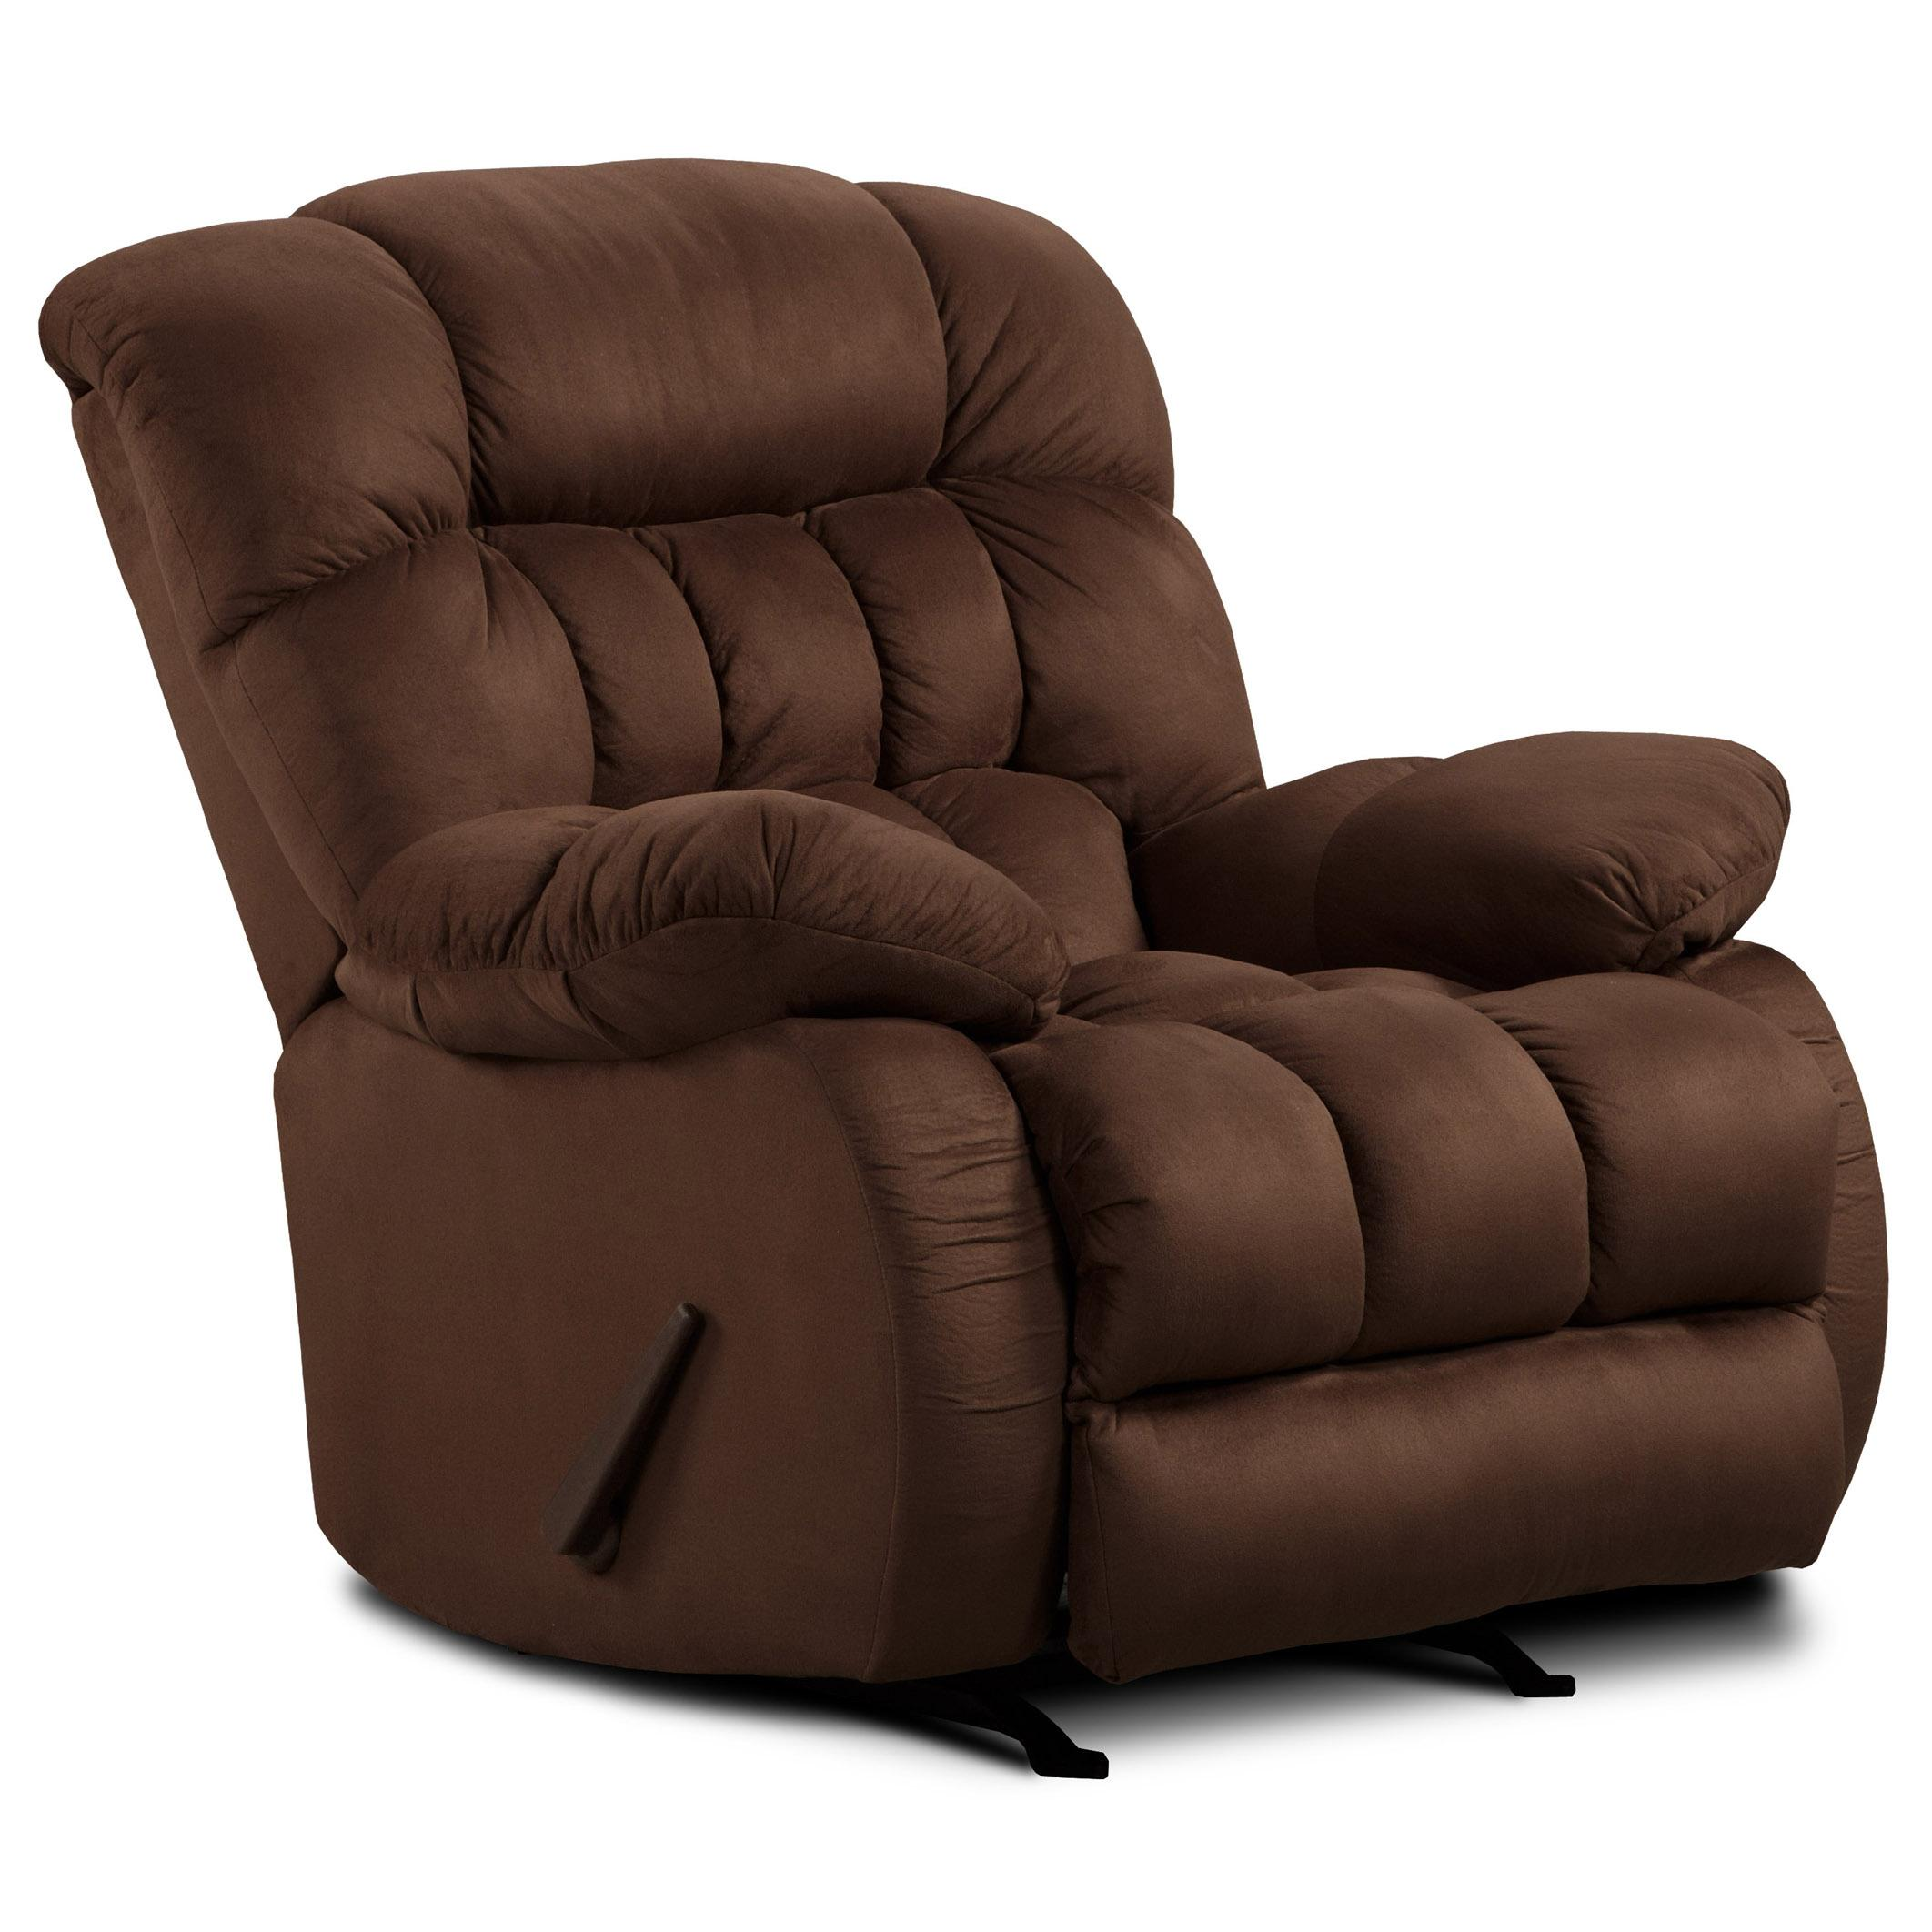 9200 Casual Recliner by Washington Furniture at Lynn's Furniture & Mattress